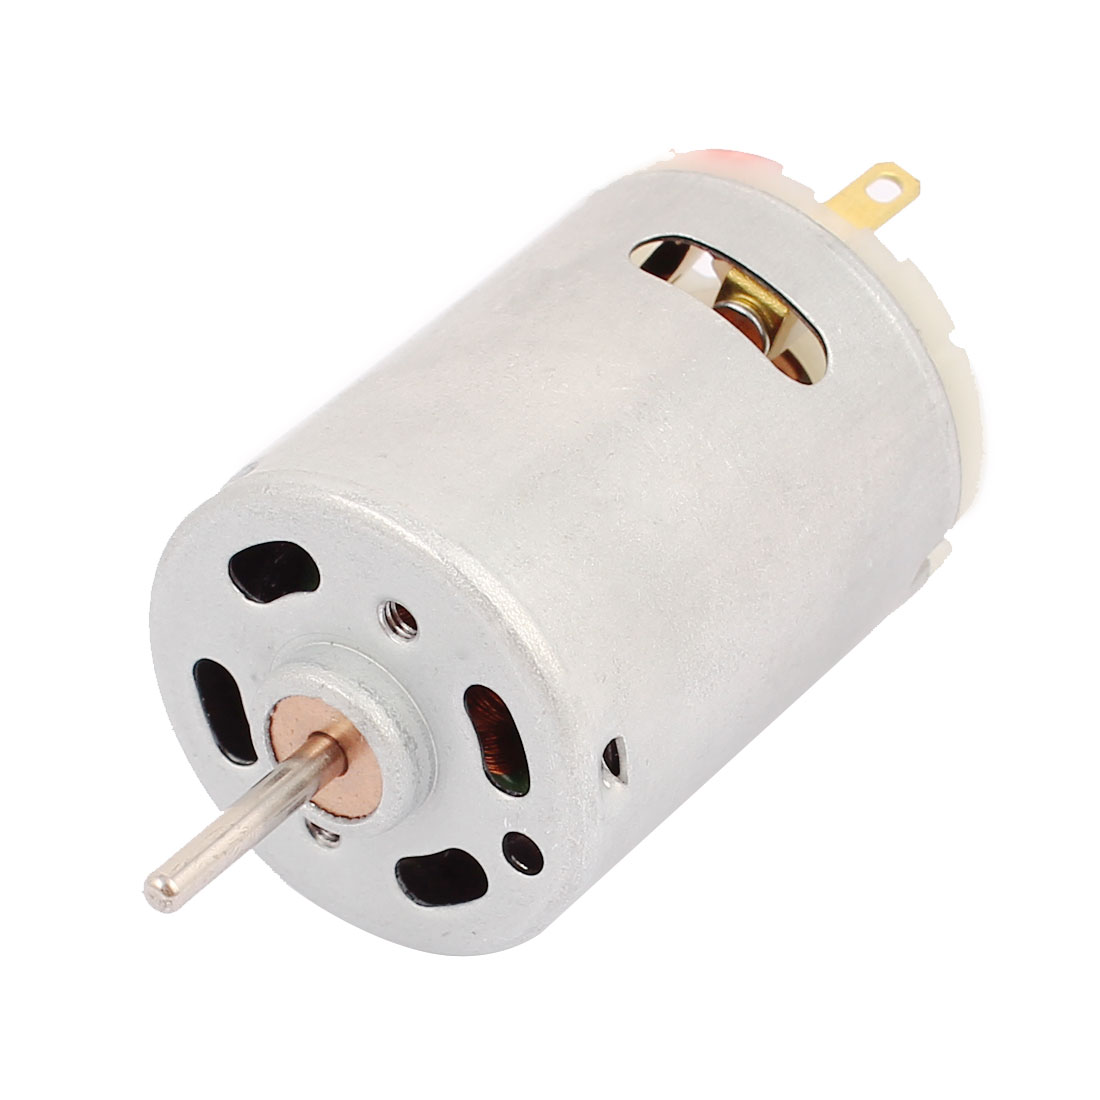 R385 DC 12V 1.35A 20600RPM Magnetic High Torque Motor for Hair Dryer